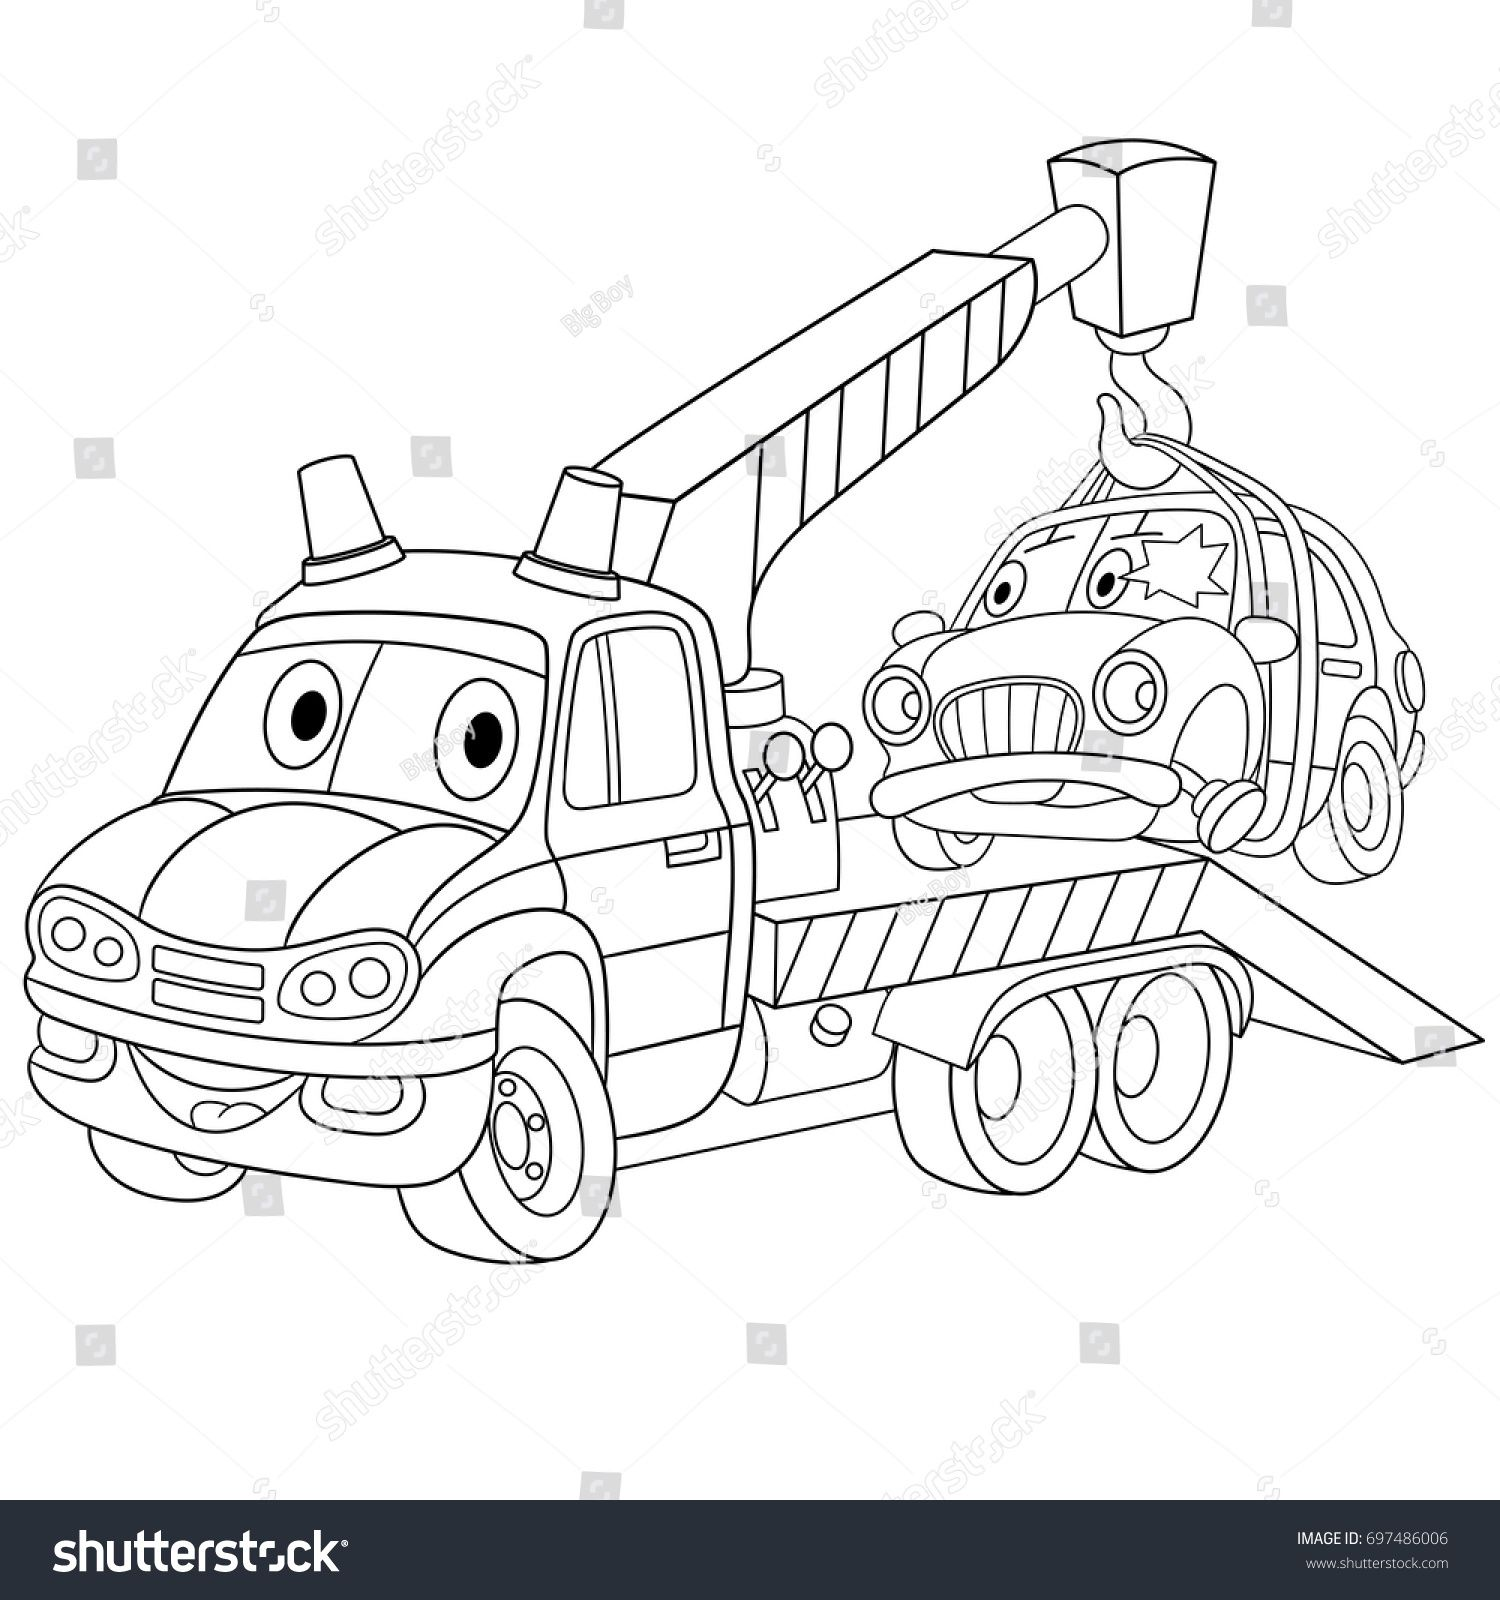 Tow Truck Coloring Page Truck Coloring Pages Monster Truck Coloring Pages Coloring Books